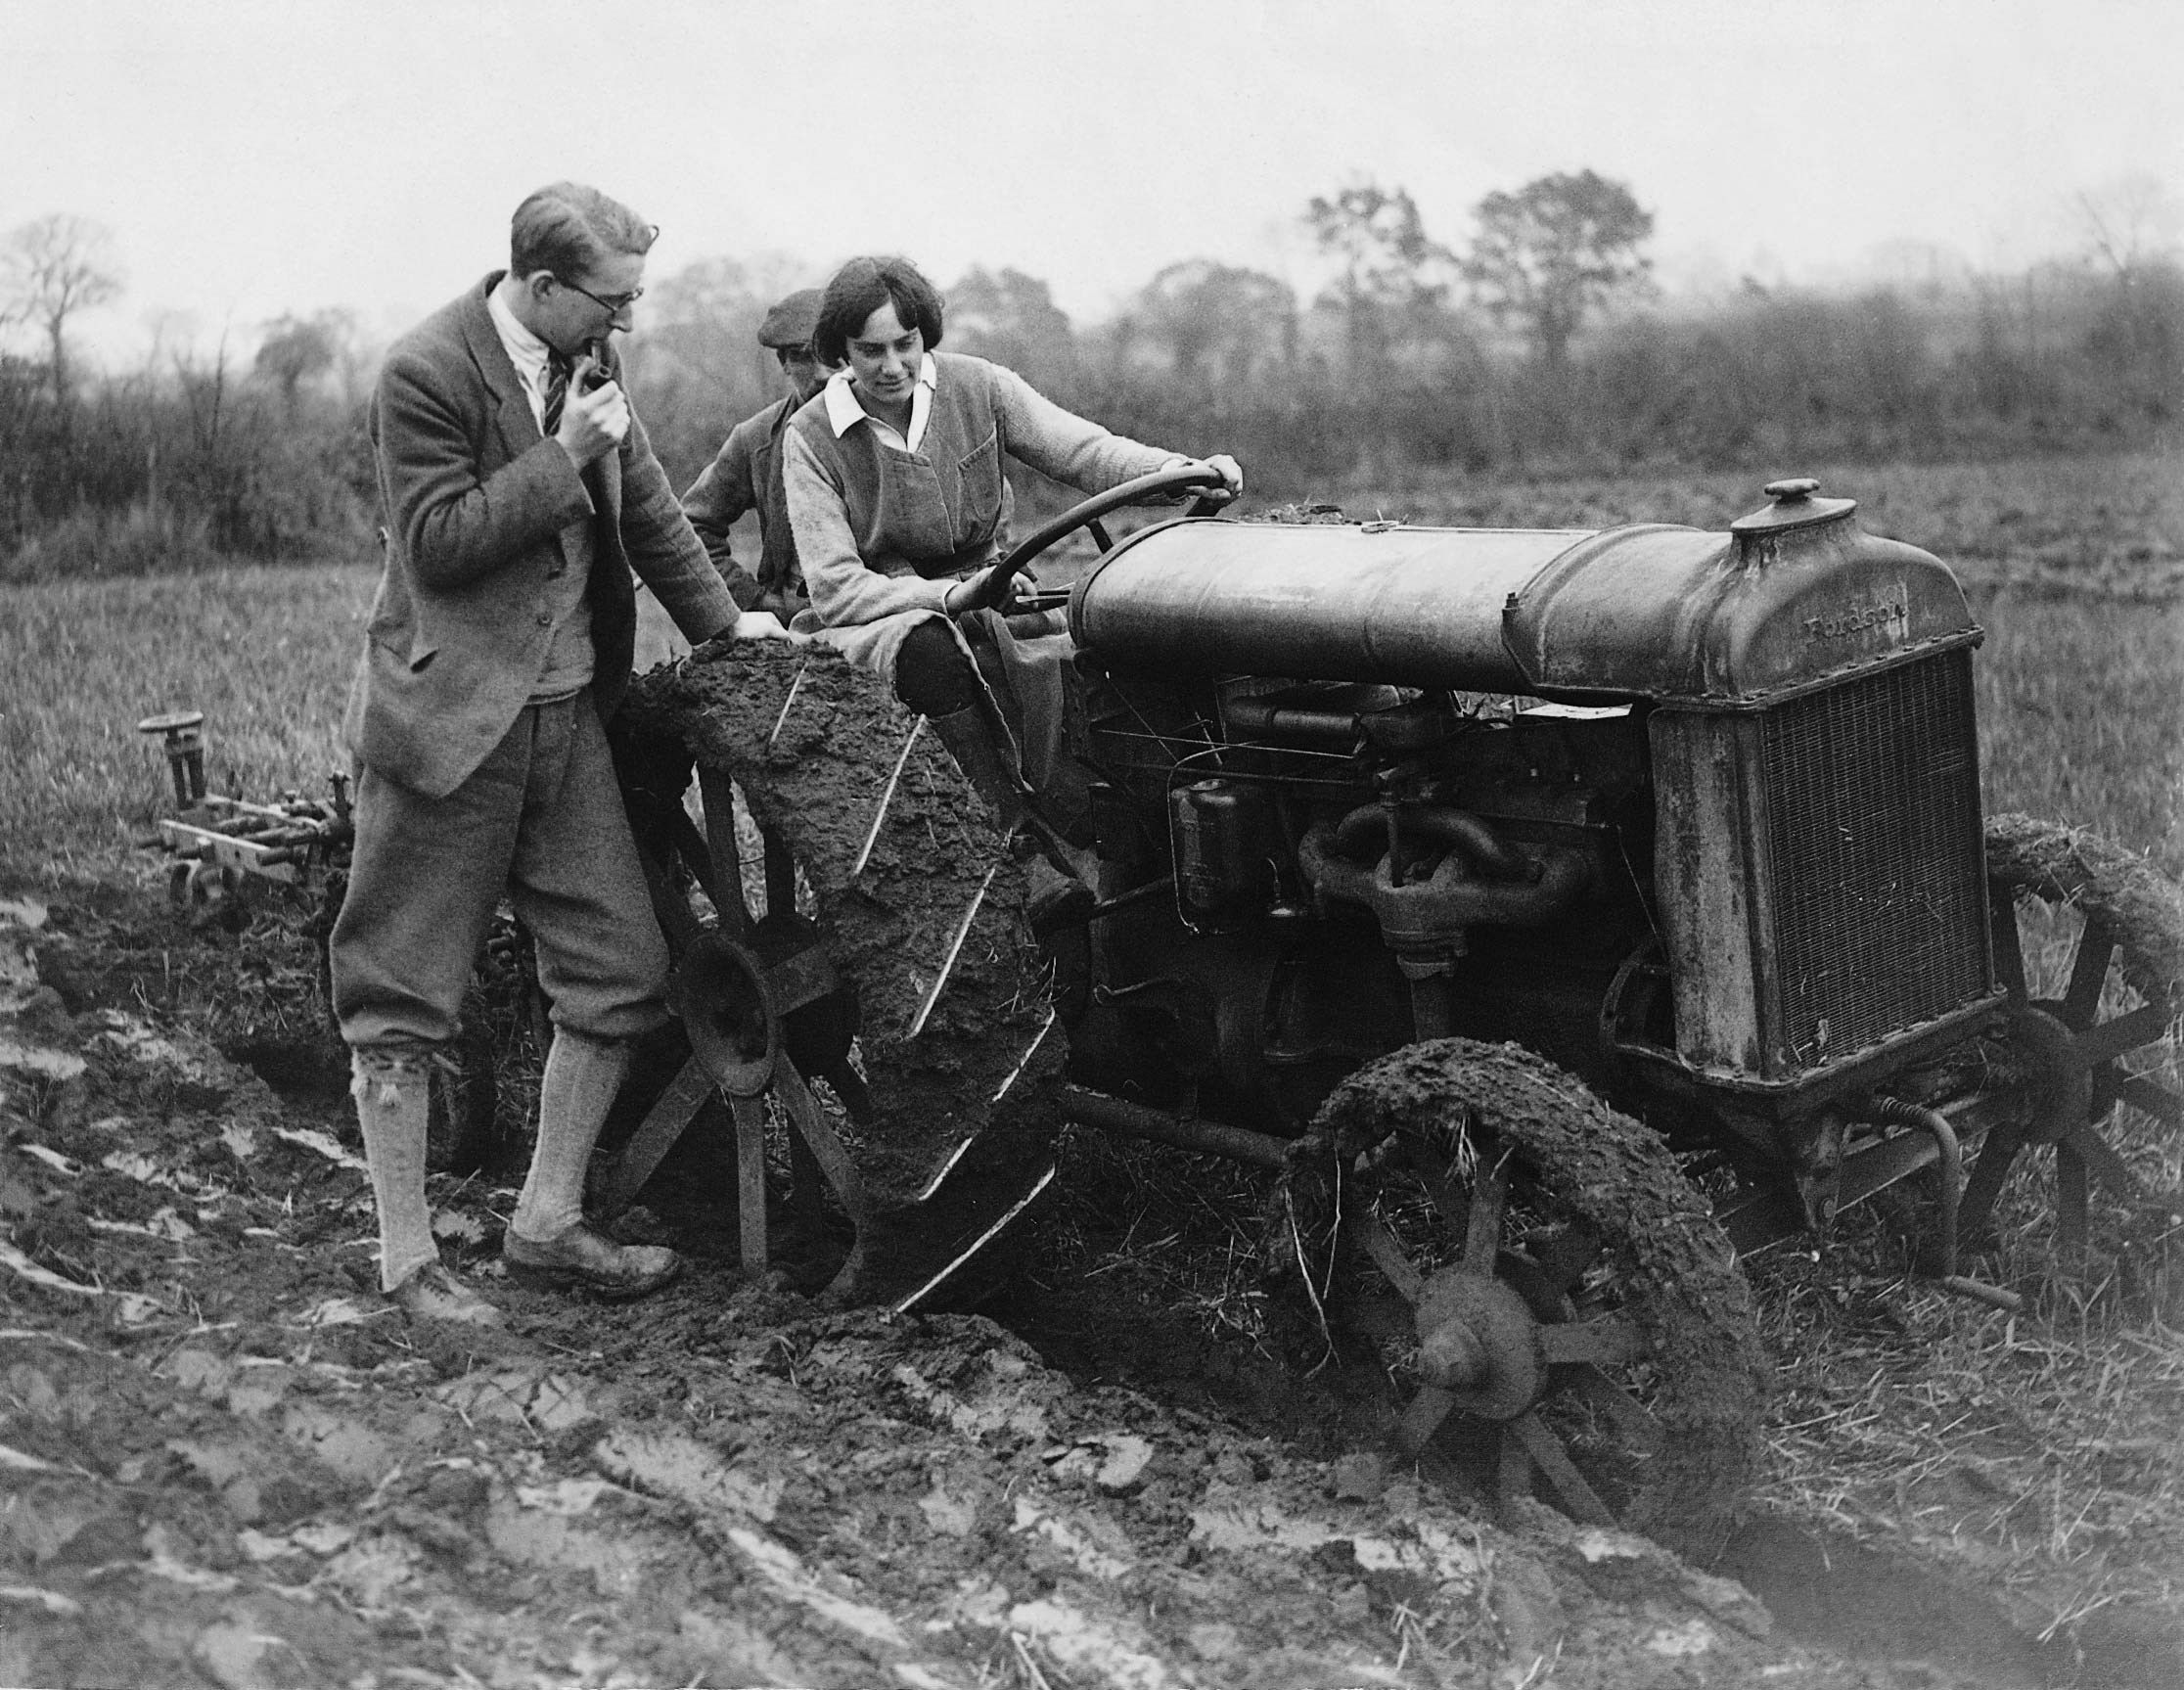 Eve driving tractor.jpg (2)